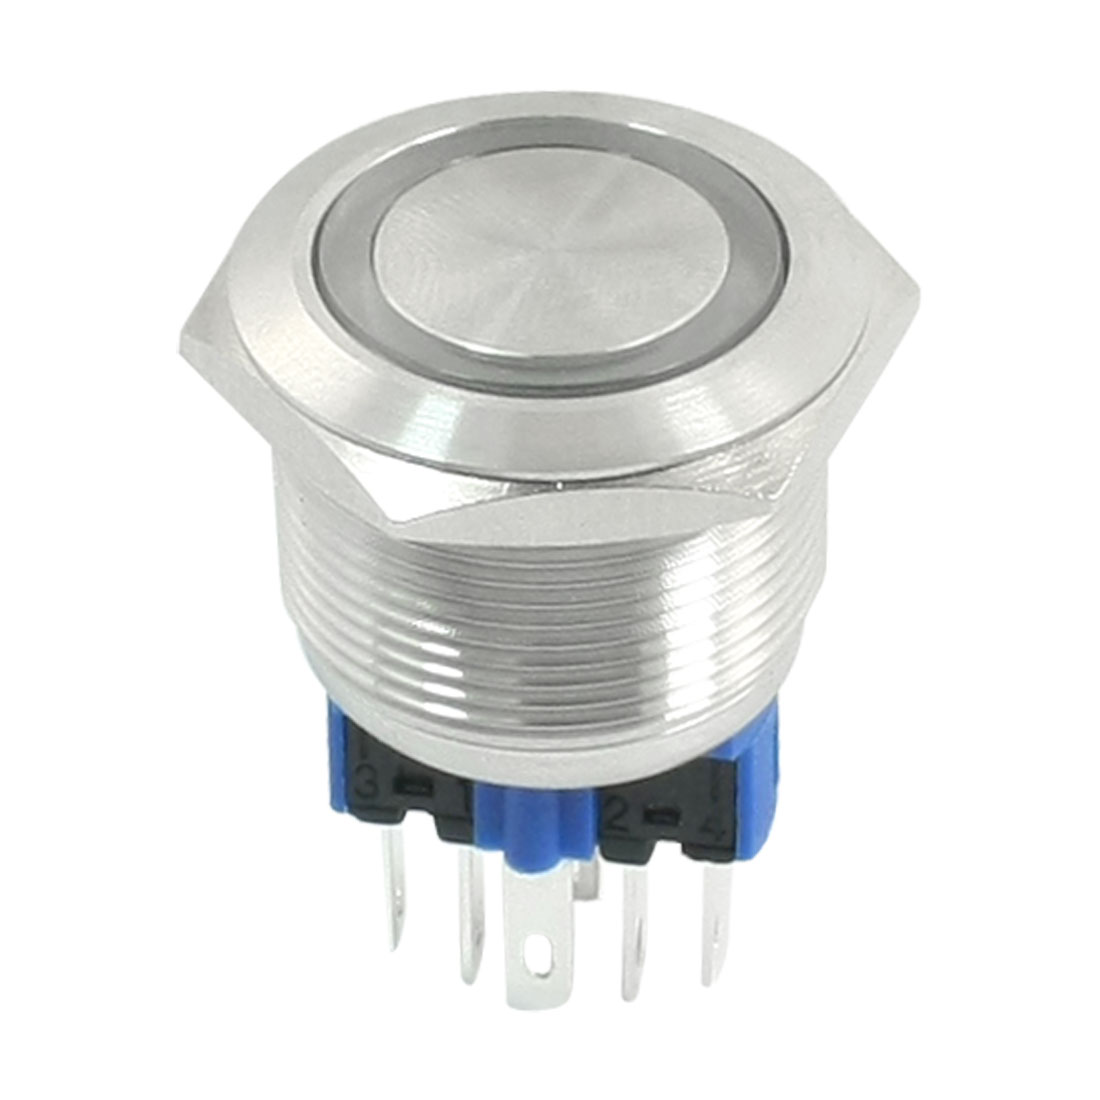 DC 12V Green Indicative LED Angel Eye DPST 1NO 1NC 6 Pins 22mm Momentary Stainless Steel Push Button Switch